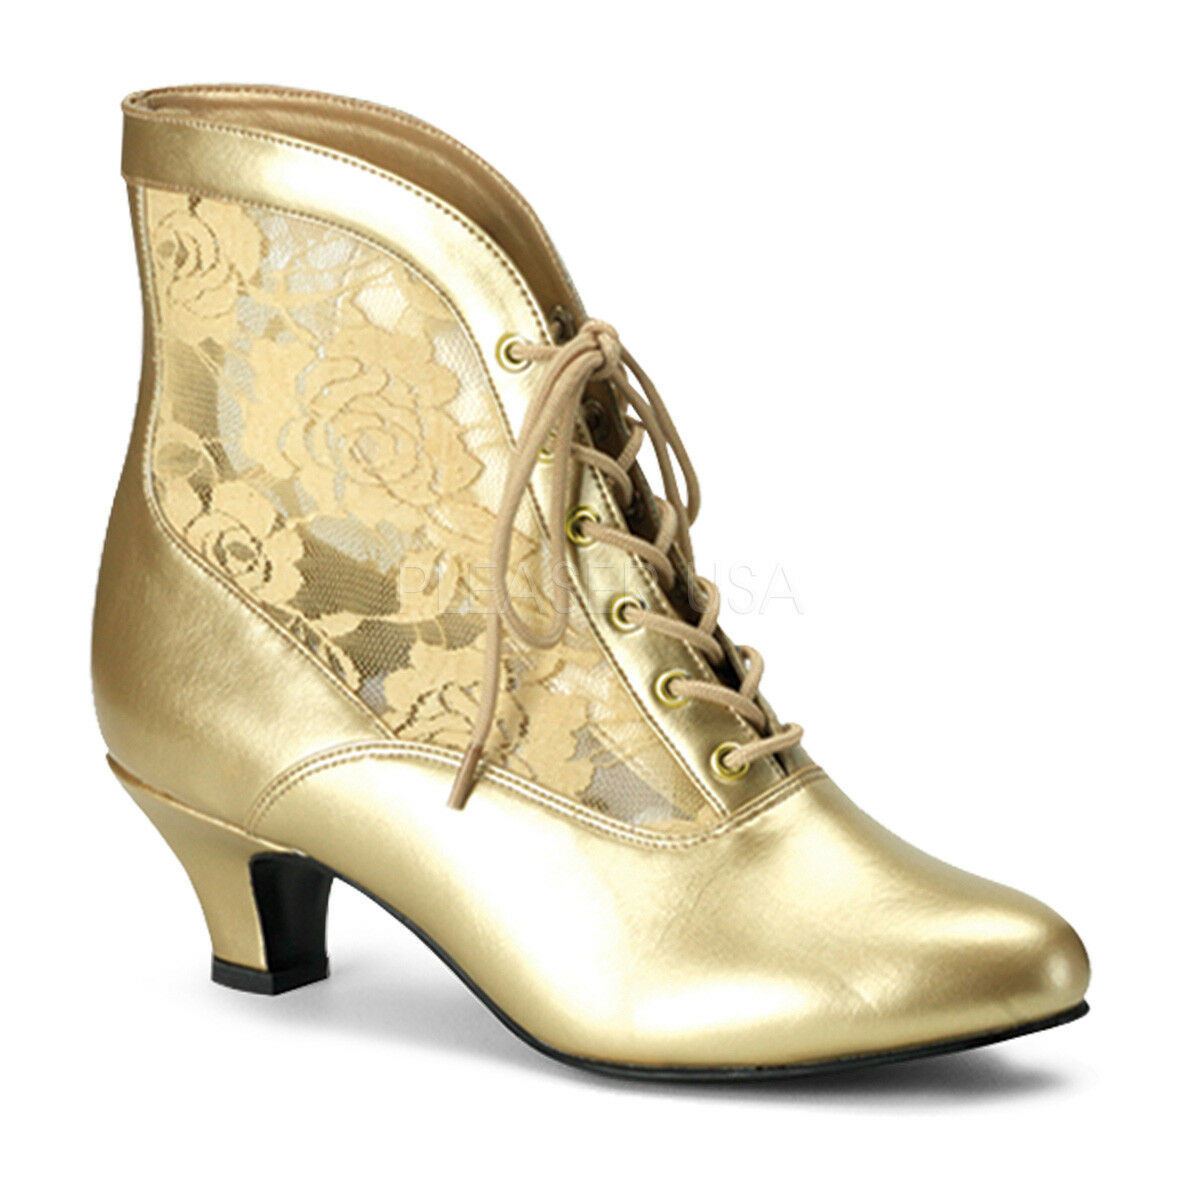 Victorian Steampunk Bridal Pioneer Witch Burlesque Ankle Gold Lace Stivali